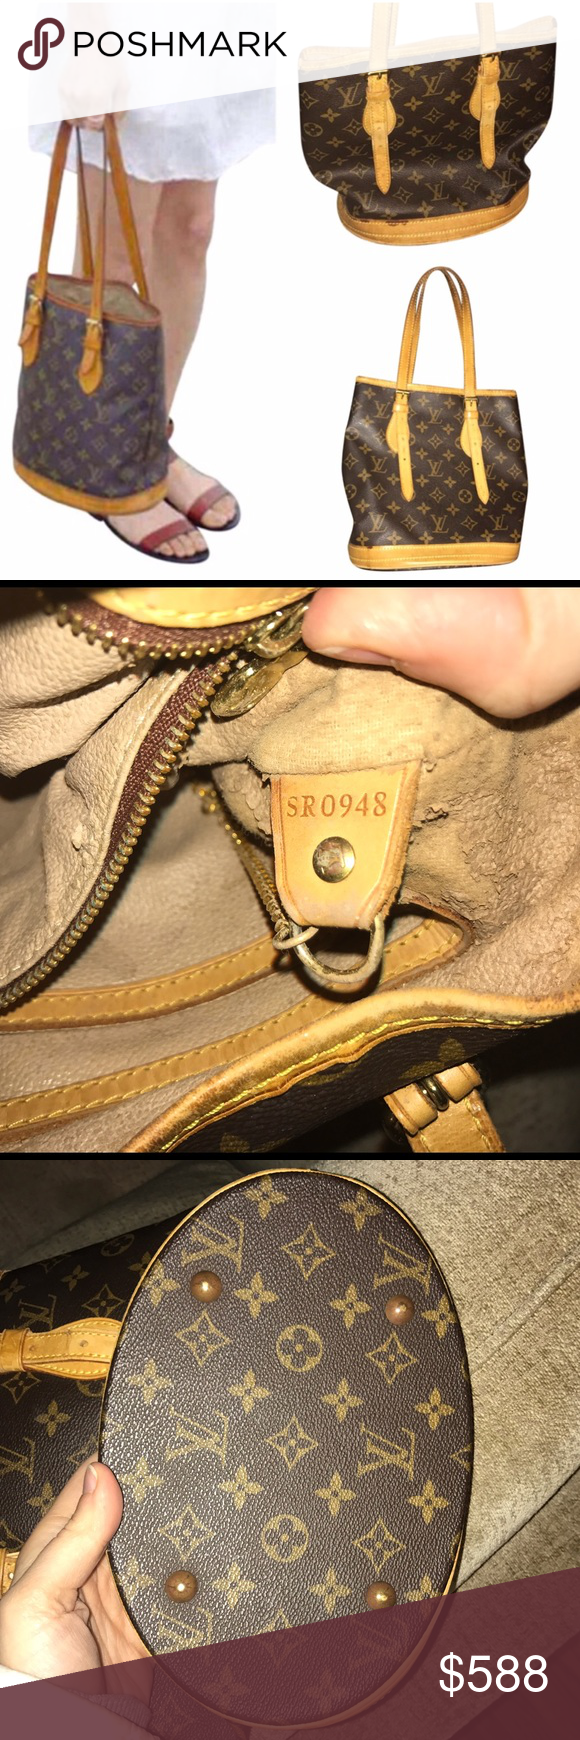 Authentic Louis Vuitton Monogram Petit Bucket Bag Coated canvas Louis Vuitton Petit Bucket w/ brass hardware, tan vachetta leather trim, dual flat straps, beige lining, dual pockets @ int. walls, pocket w/ zip closure & open @ top.   Exterior: Great condition!  Interior: There's definitely stickiness @ lining that happens sometimes w/ improper cleaner in an LV. There are DIY methods to fix (such as talcum powder/goo gone). Note: also some damage visible where the lining has shed layers…